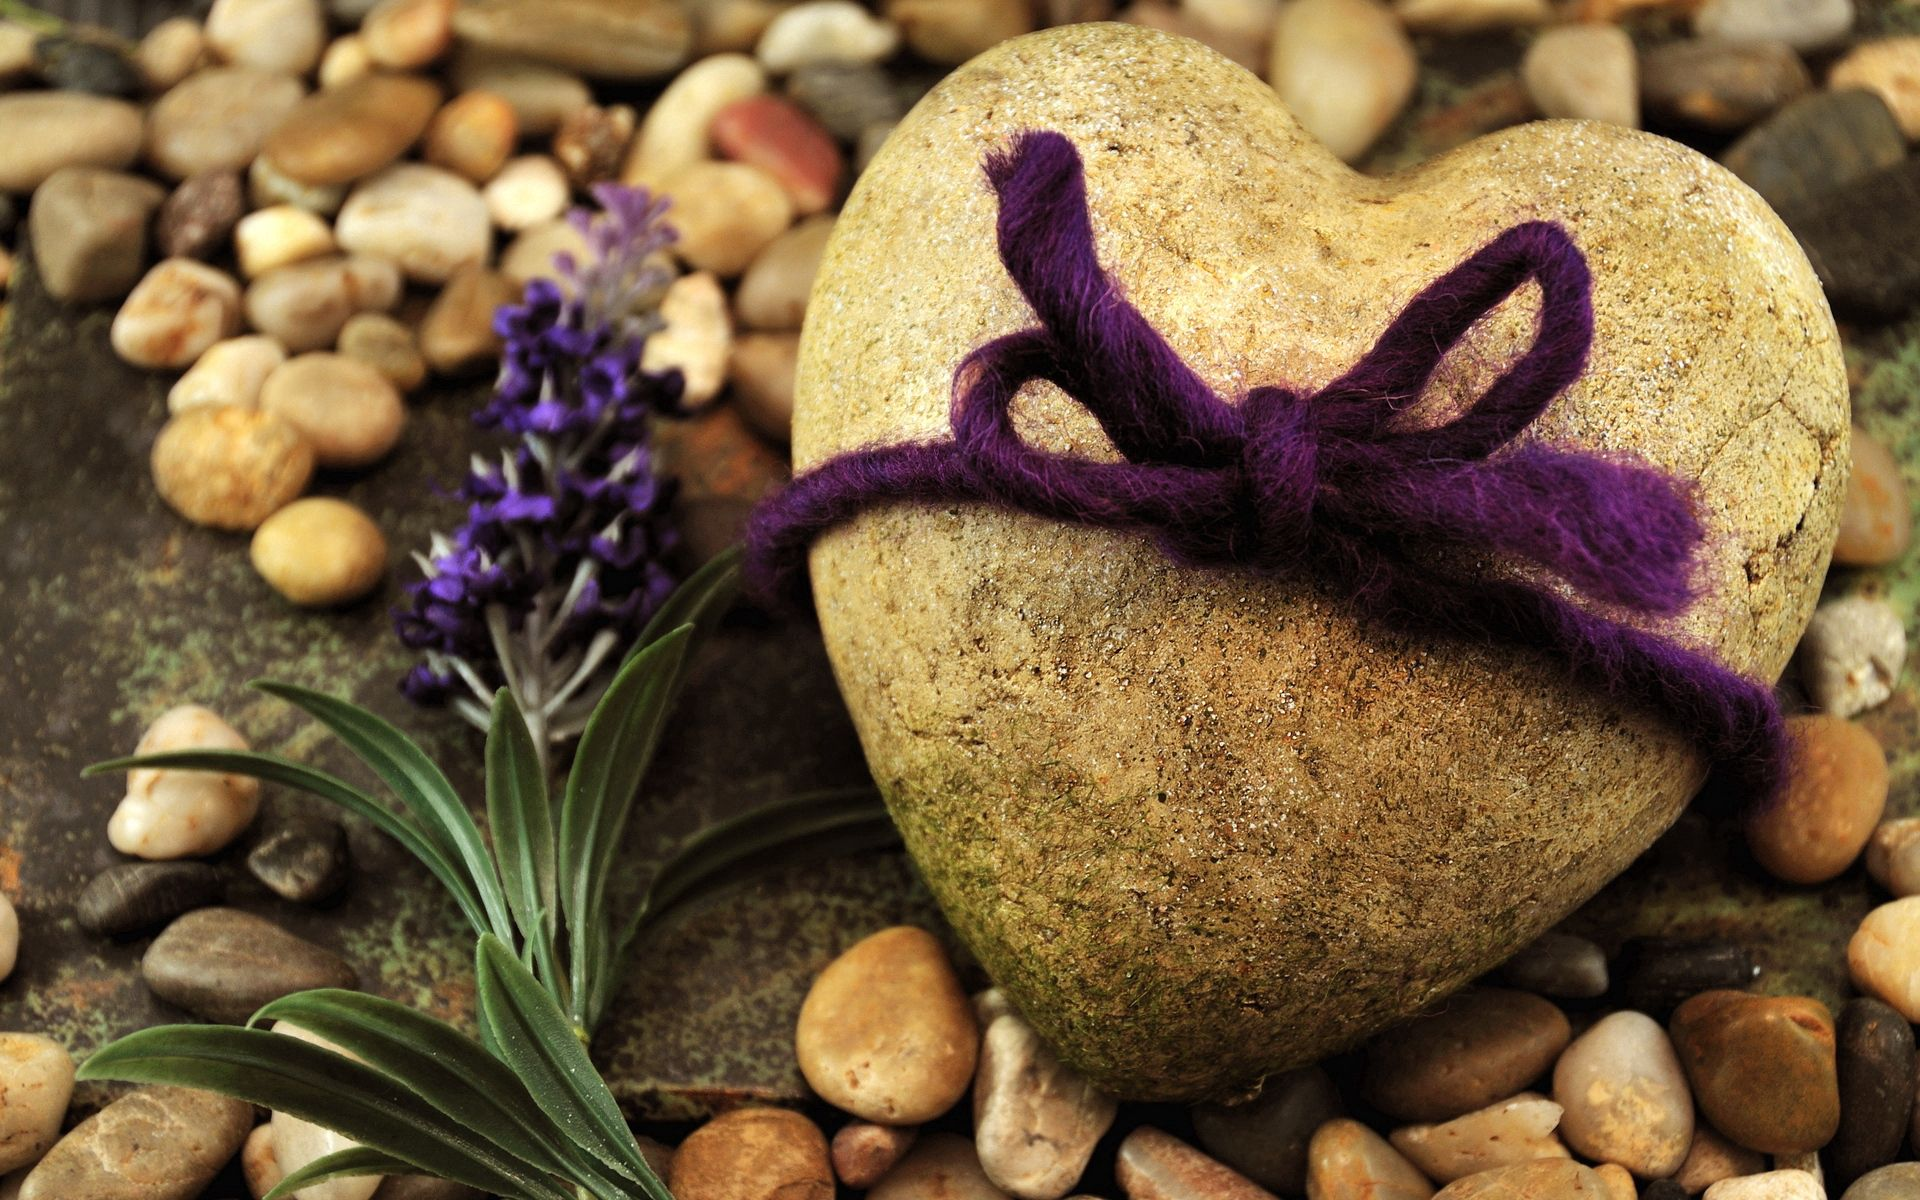 148432 download wallpaper Love, Rock, Stone, Shore, Bank, Rope, Flowers screensavers and pictures for free